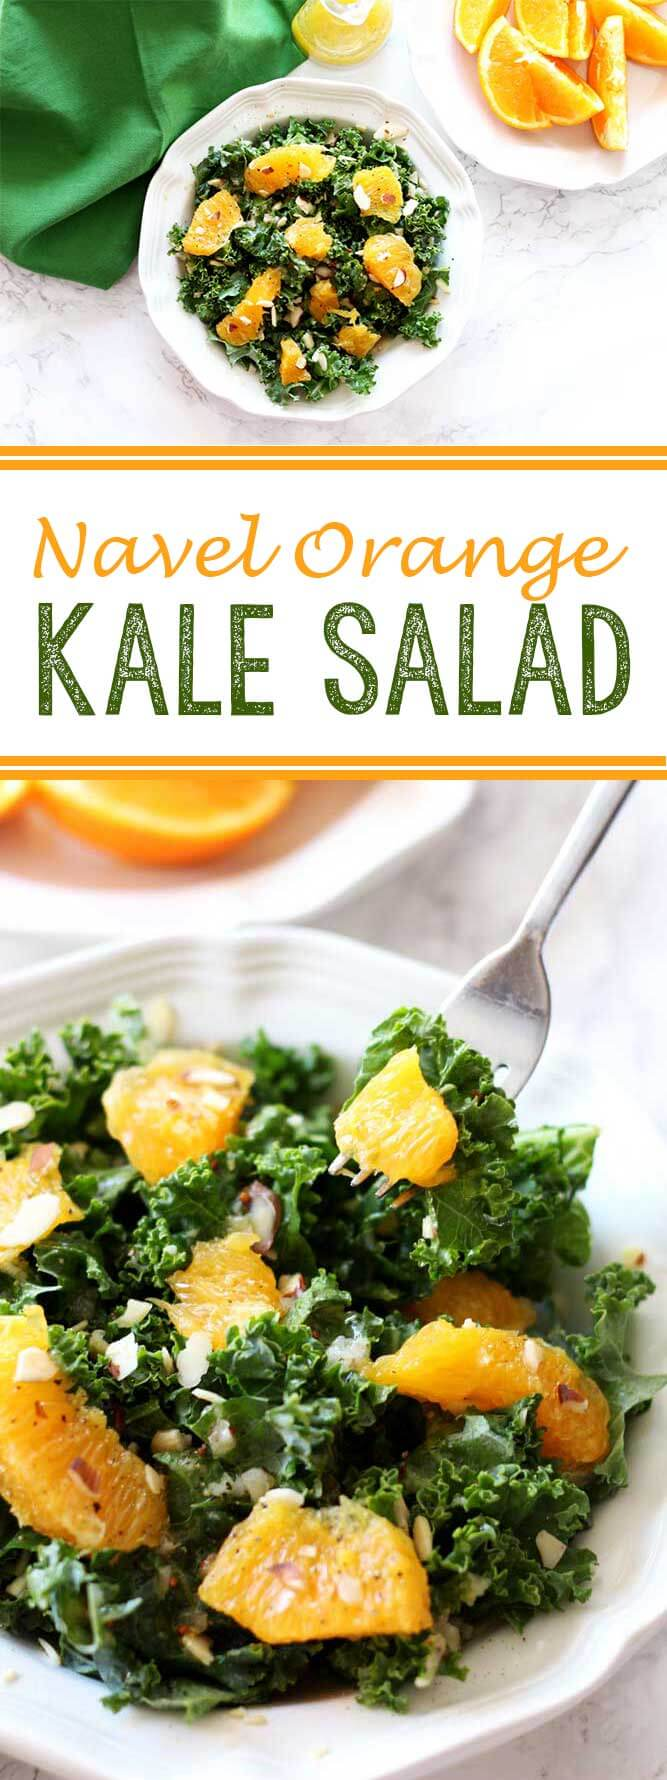 Navel Orange Kale Salad is a light, summery salad that is absolutely delicious